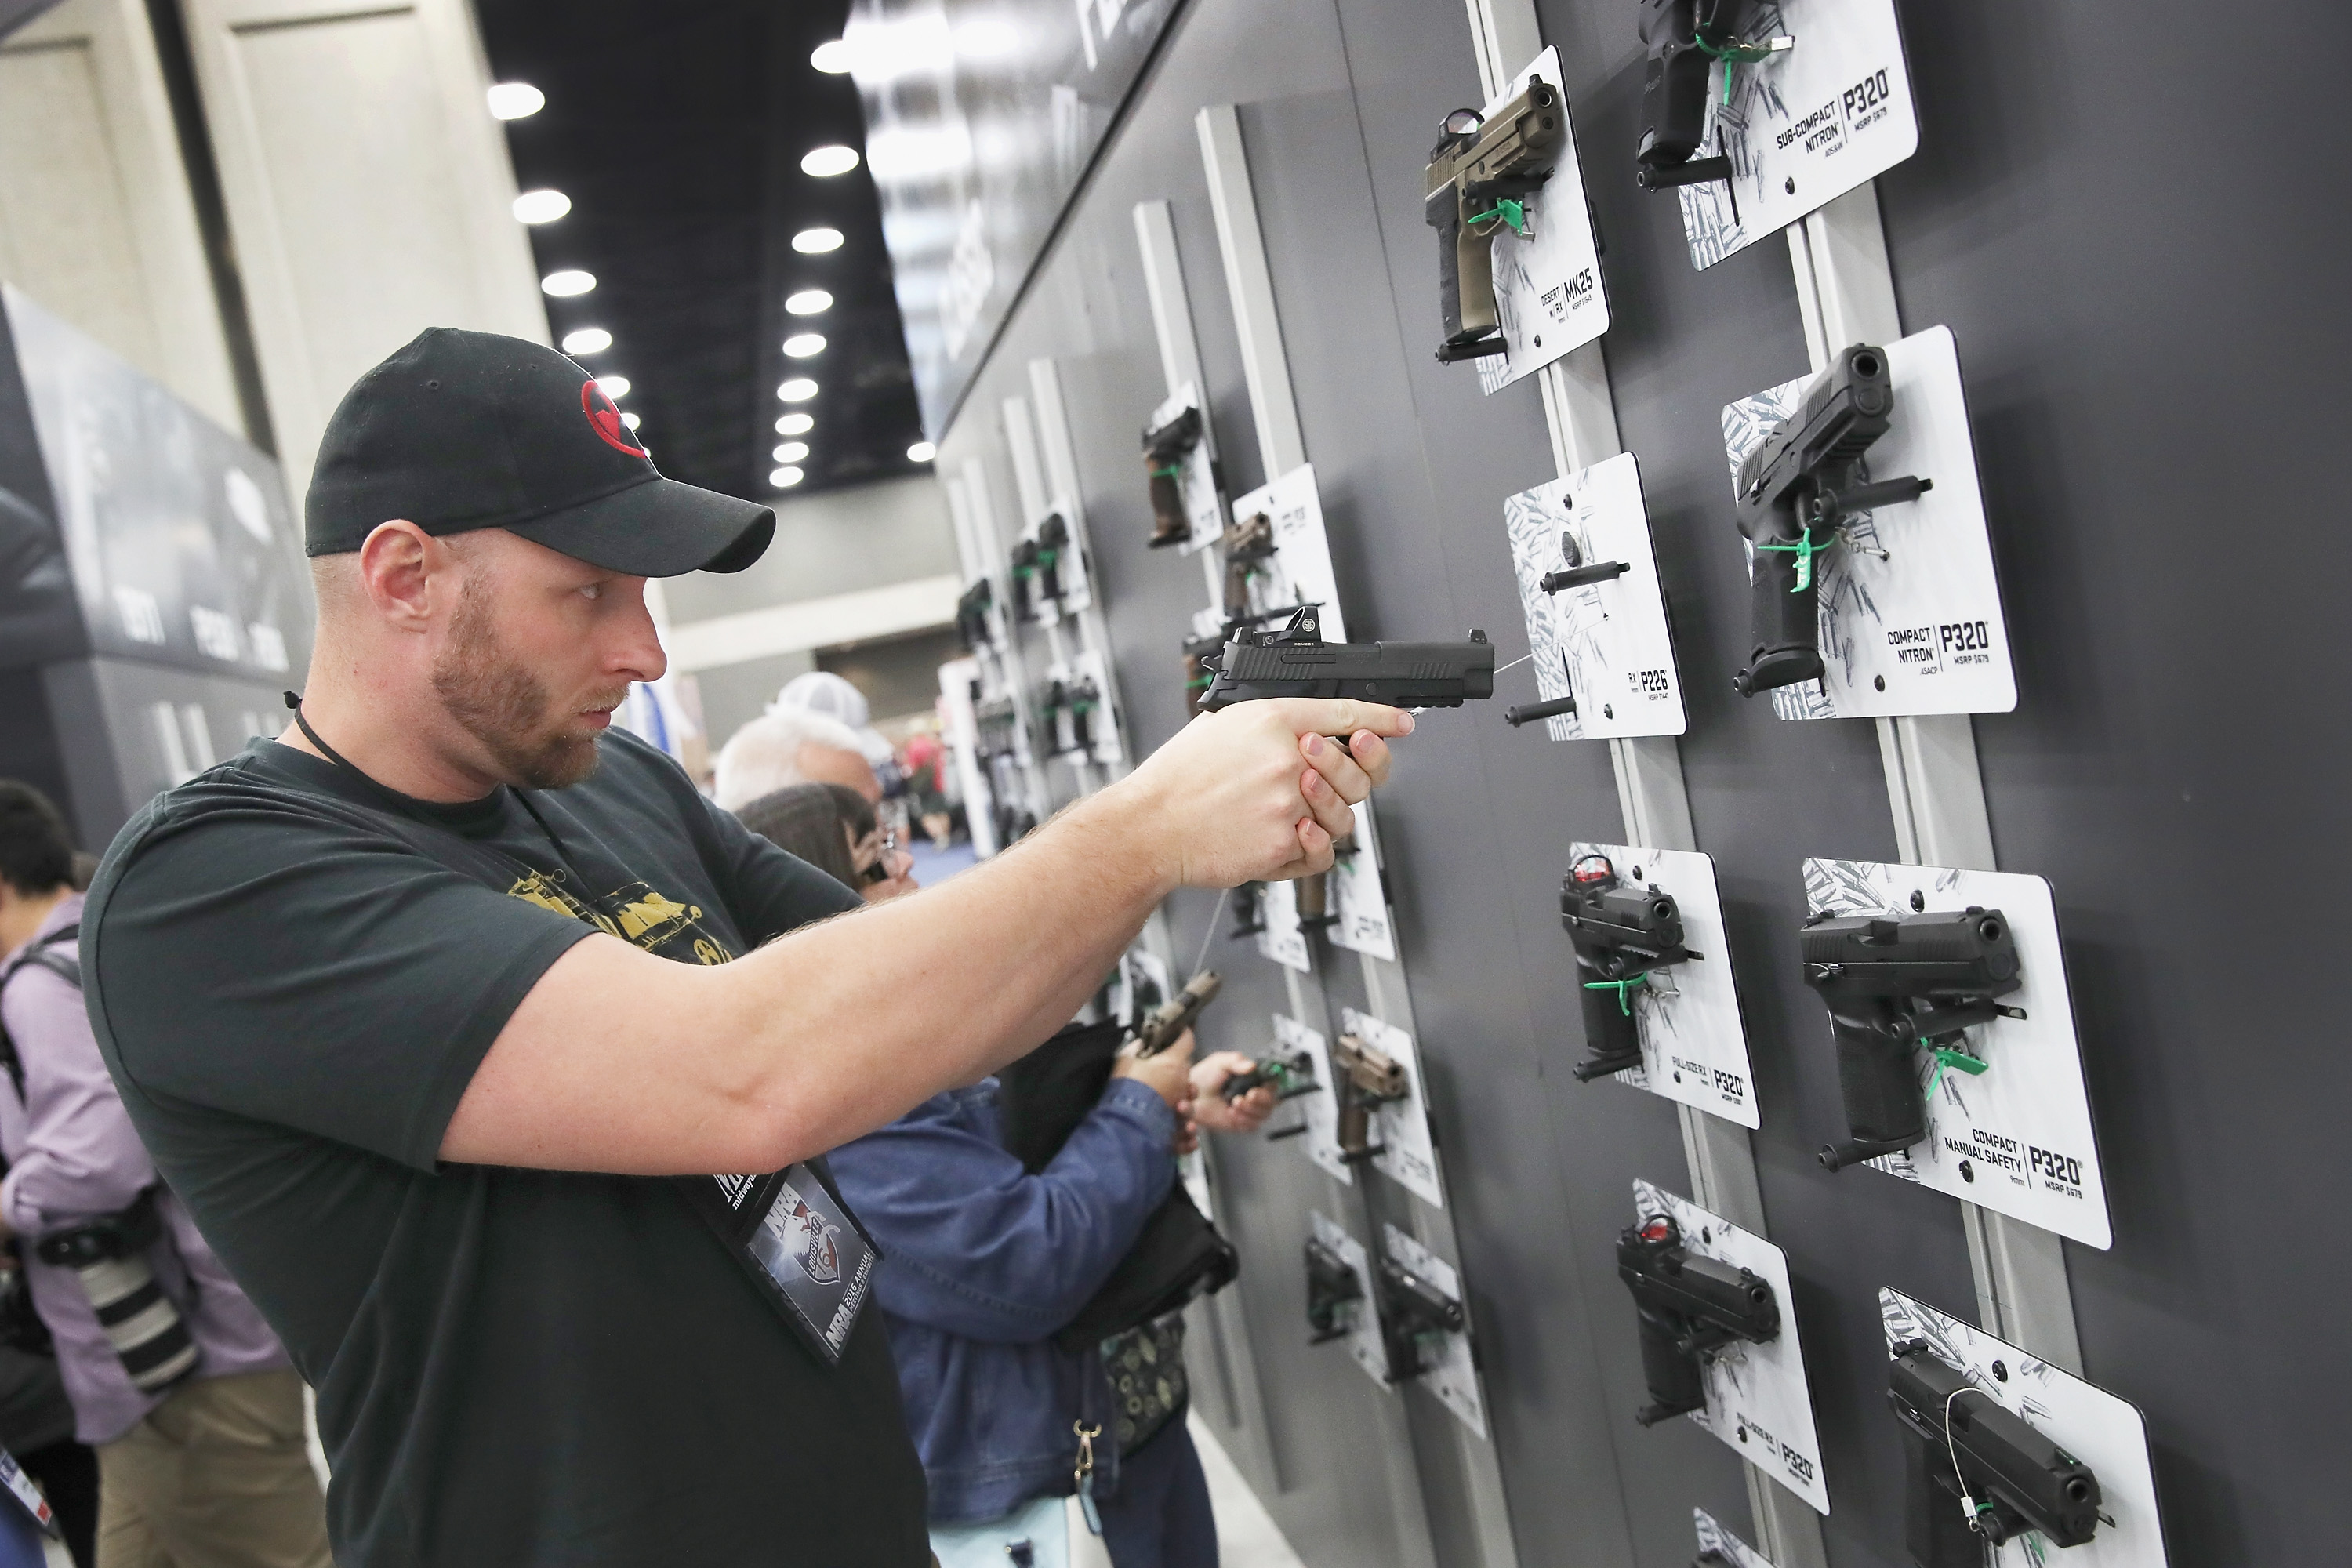 Dale Locher looks over SIG SAUER pistols at the NRA Annual Meetings & Exhibits on May 21, 2016 in Louisville, Kentucky. (Photo by Scott Olson/Getty Images)